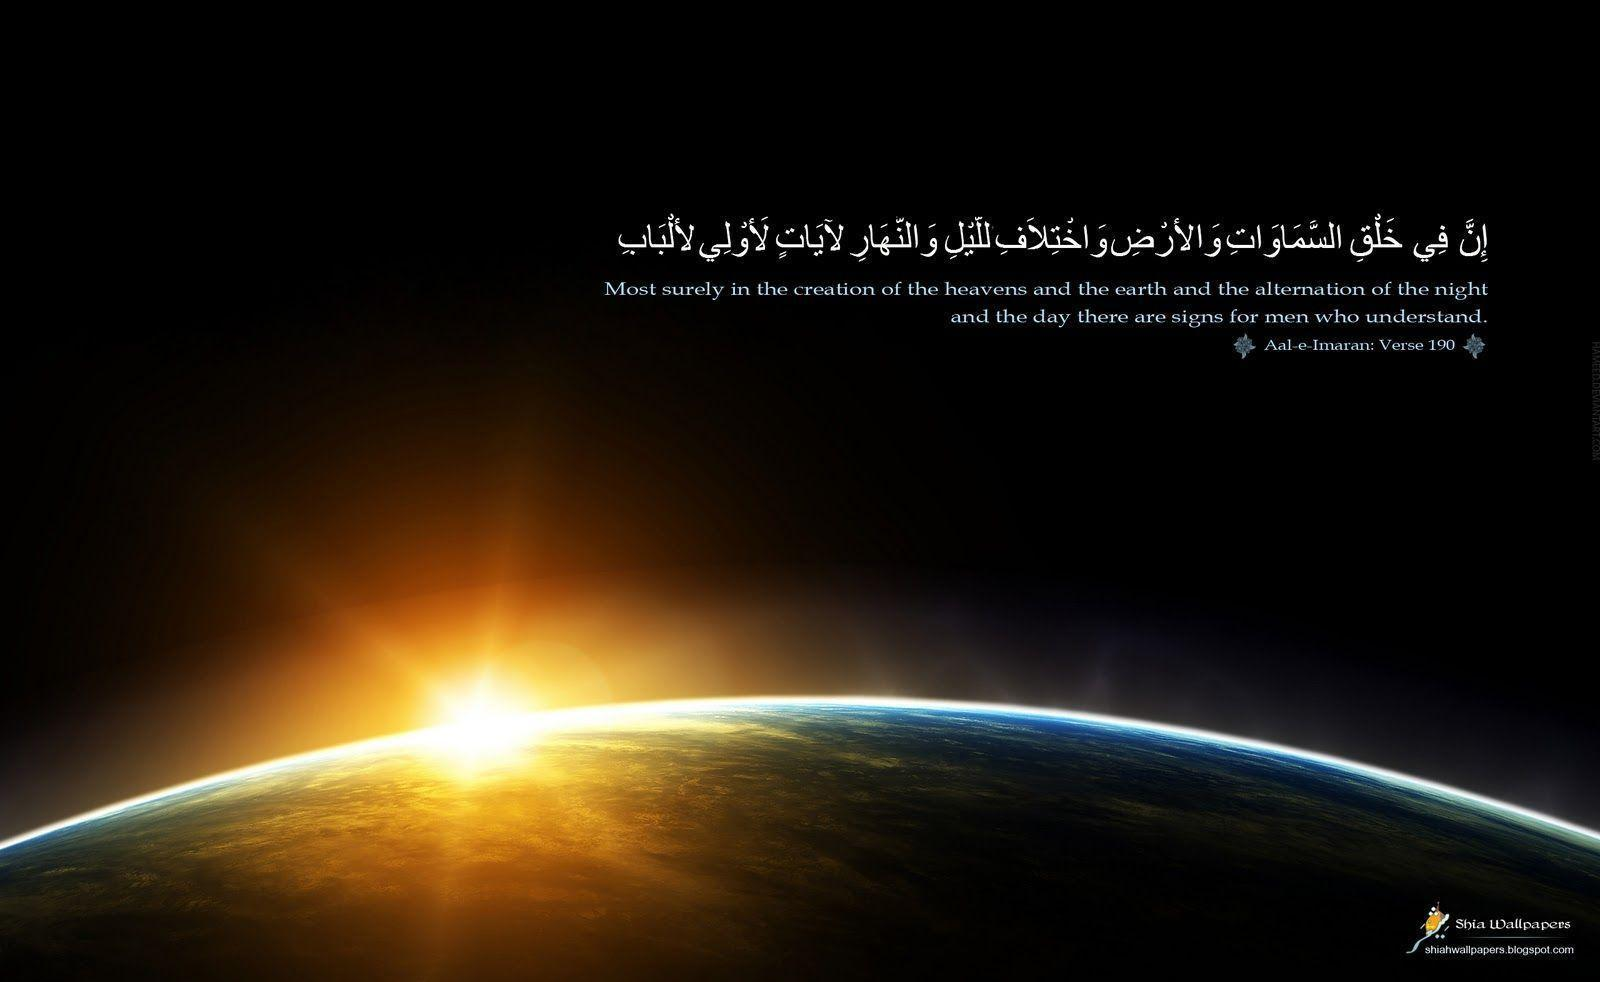 wallpapers with holy quran - photo #23